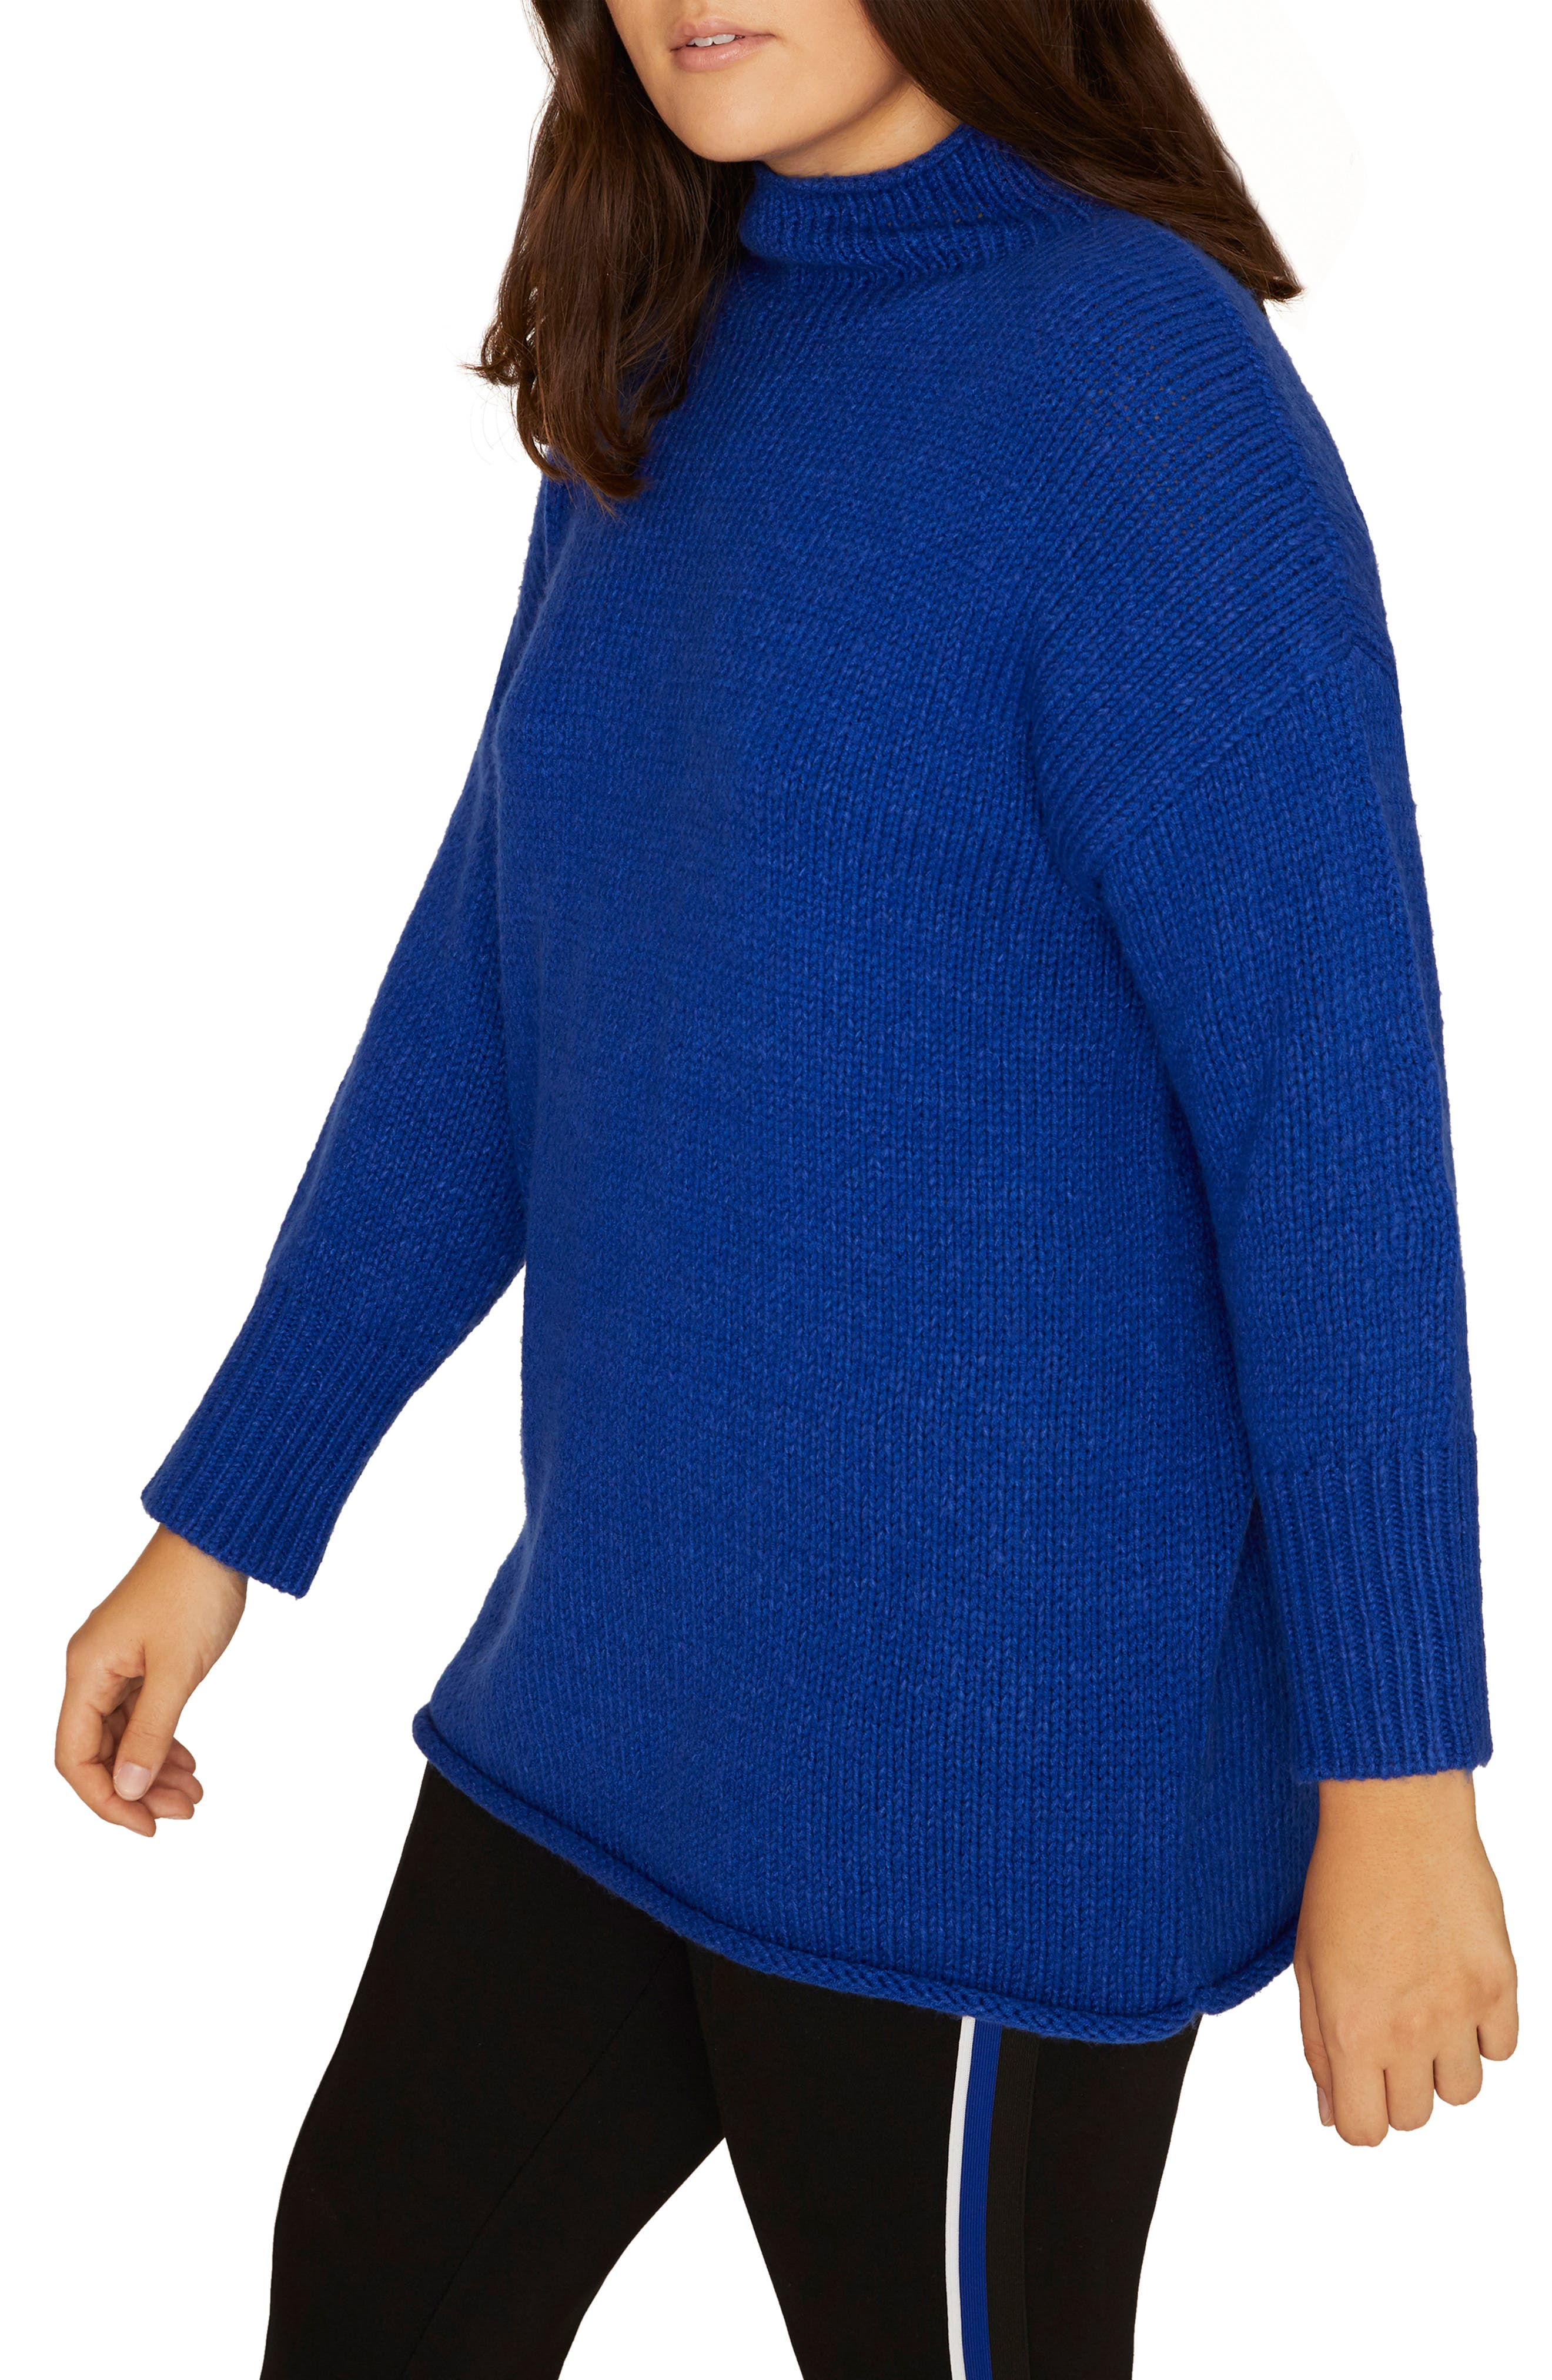 SANCTUARY, Supersized Curl Up Sweater, Alternate thumbnail 3, color, ELECTRIC BLUE